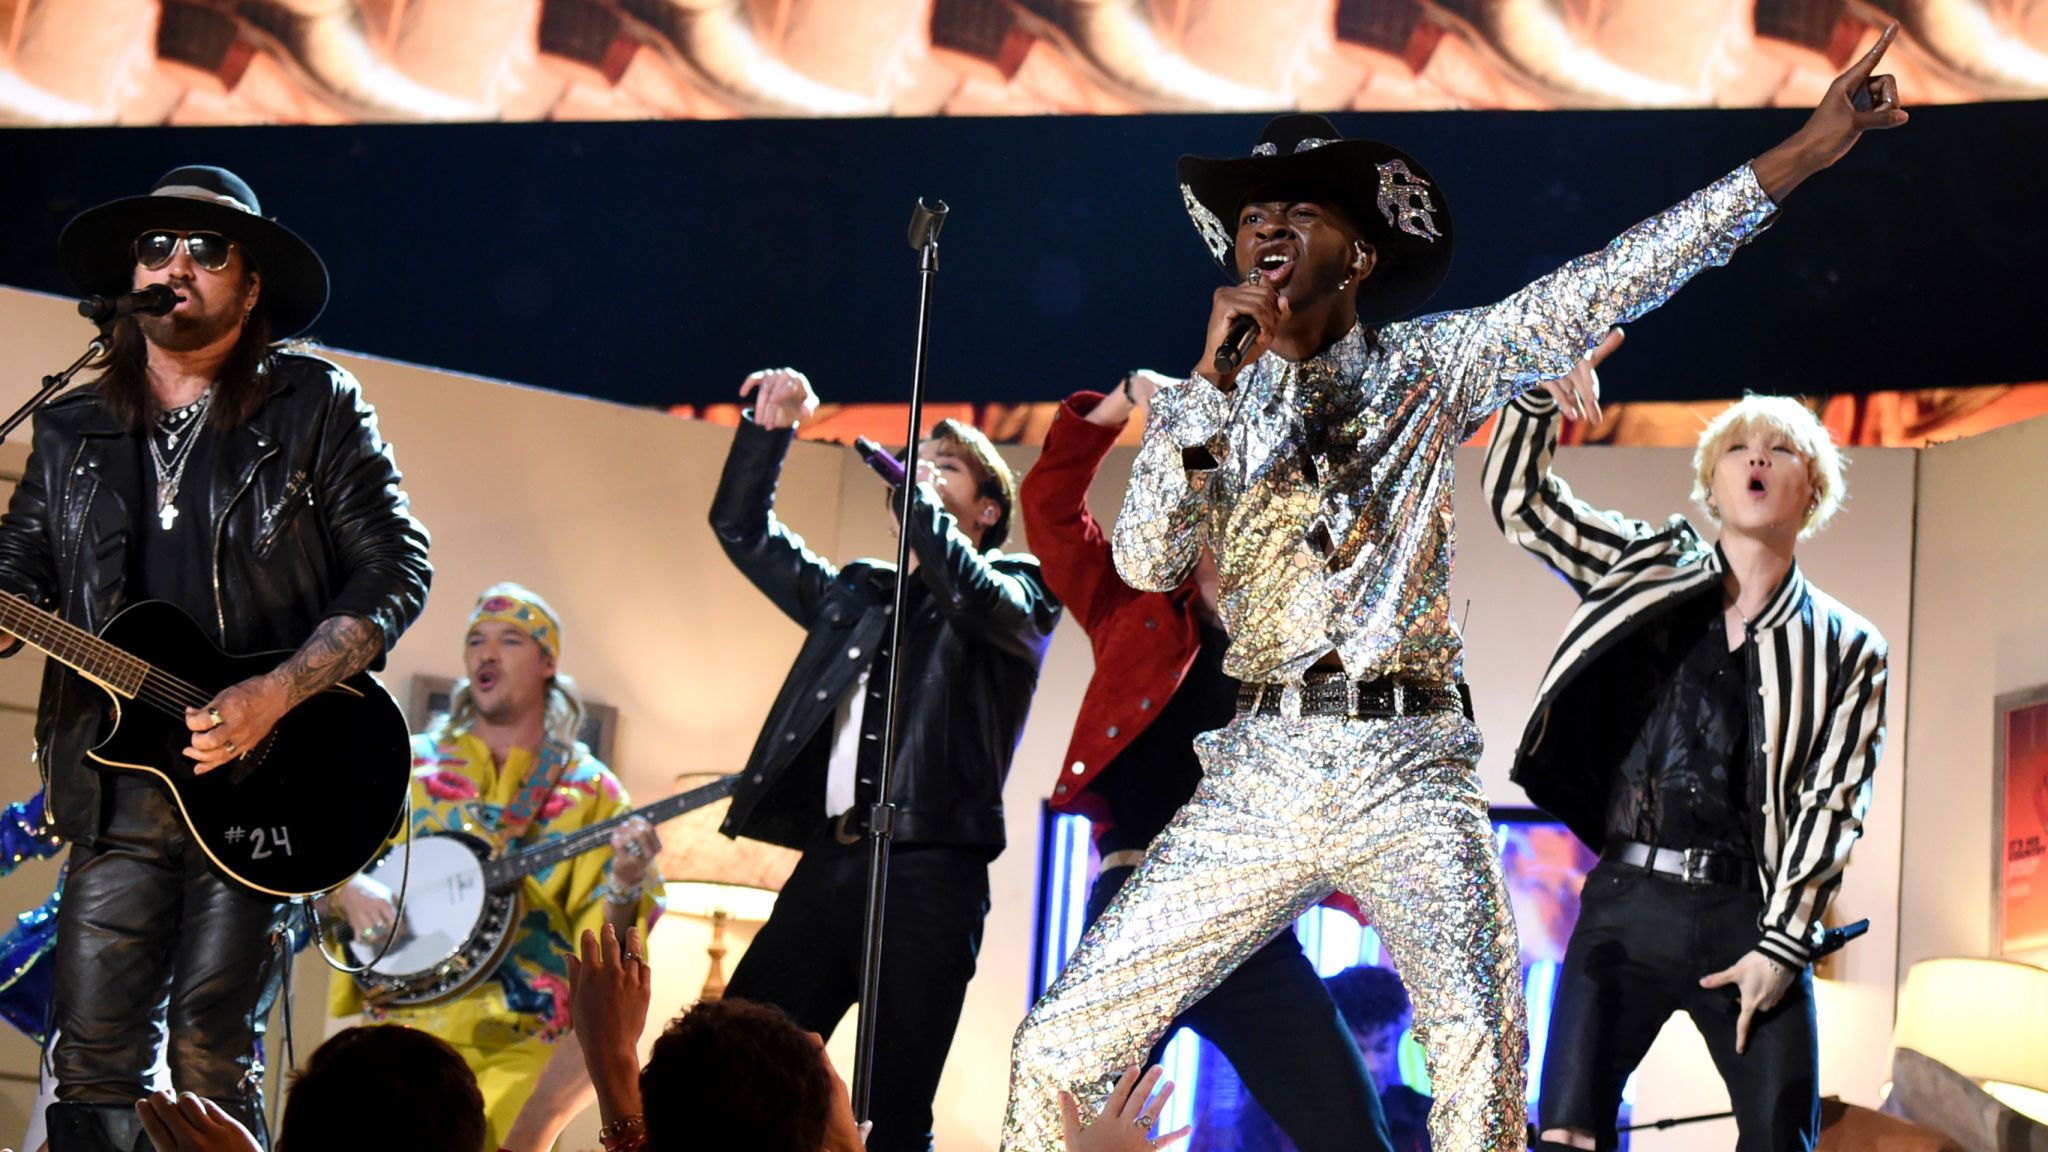 Billy Ray Cyrus, Lil Nas X, and BTS perform at the 62nd Annual GRAMMY Awards on January 26, 2020 in Los Angeles, California